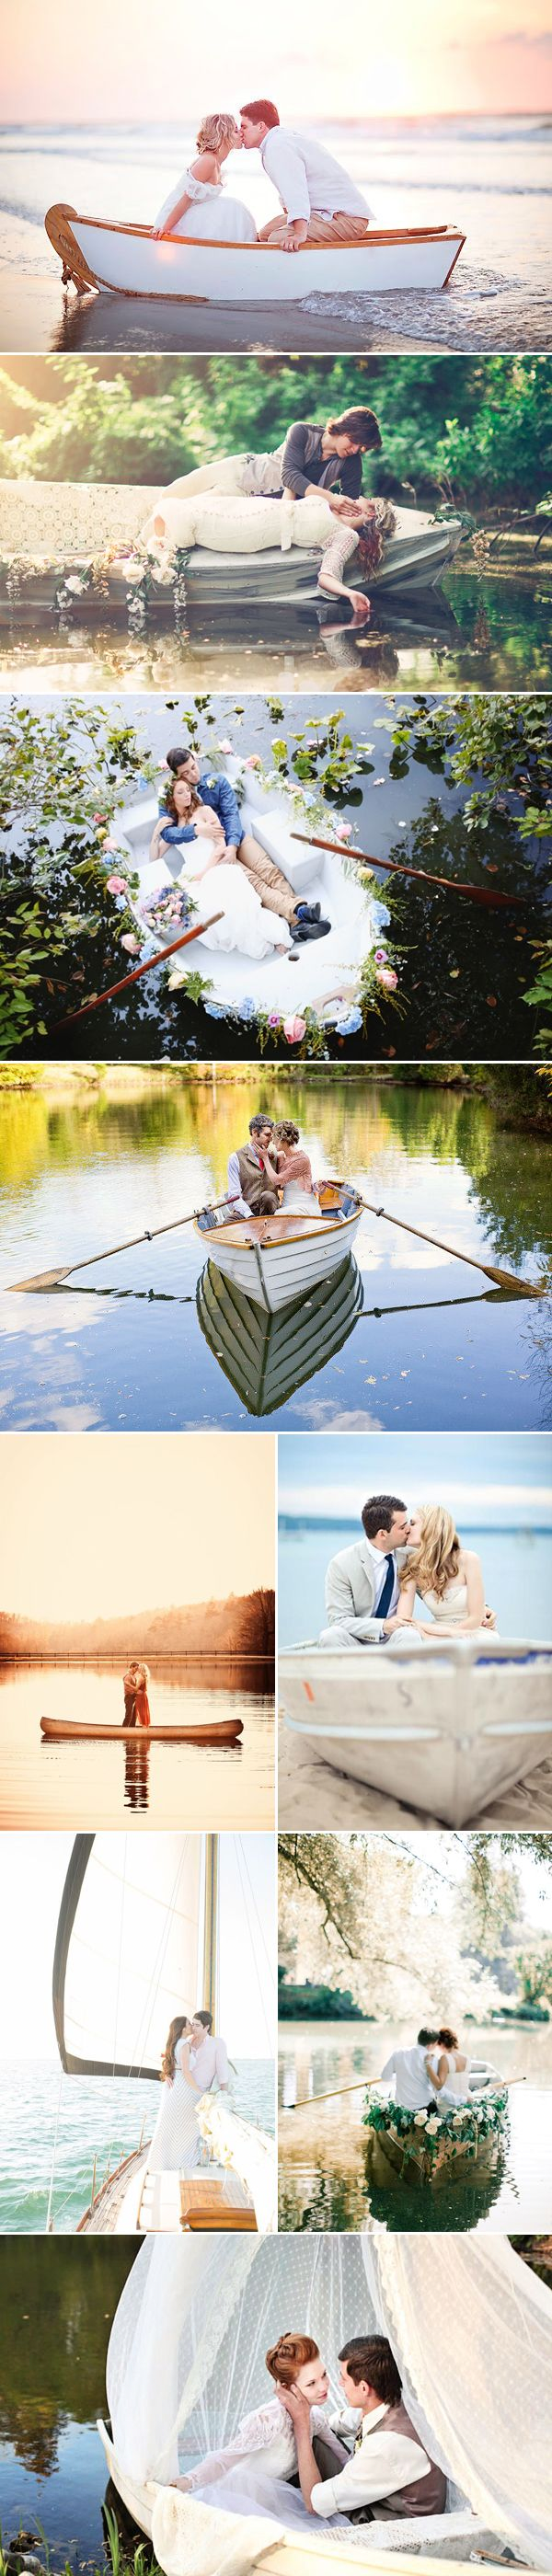 romantic boat photos